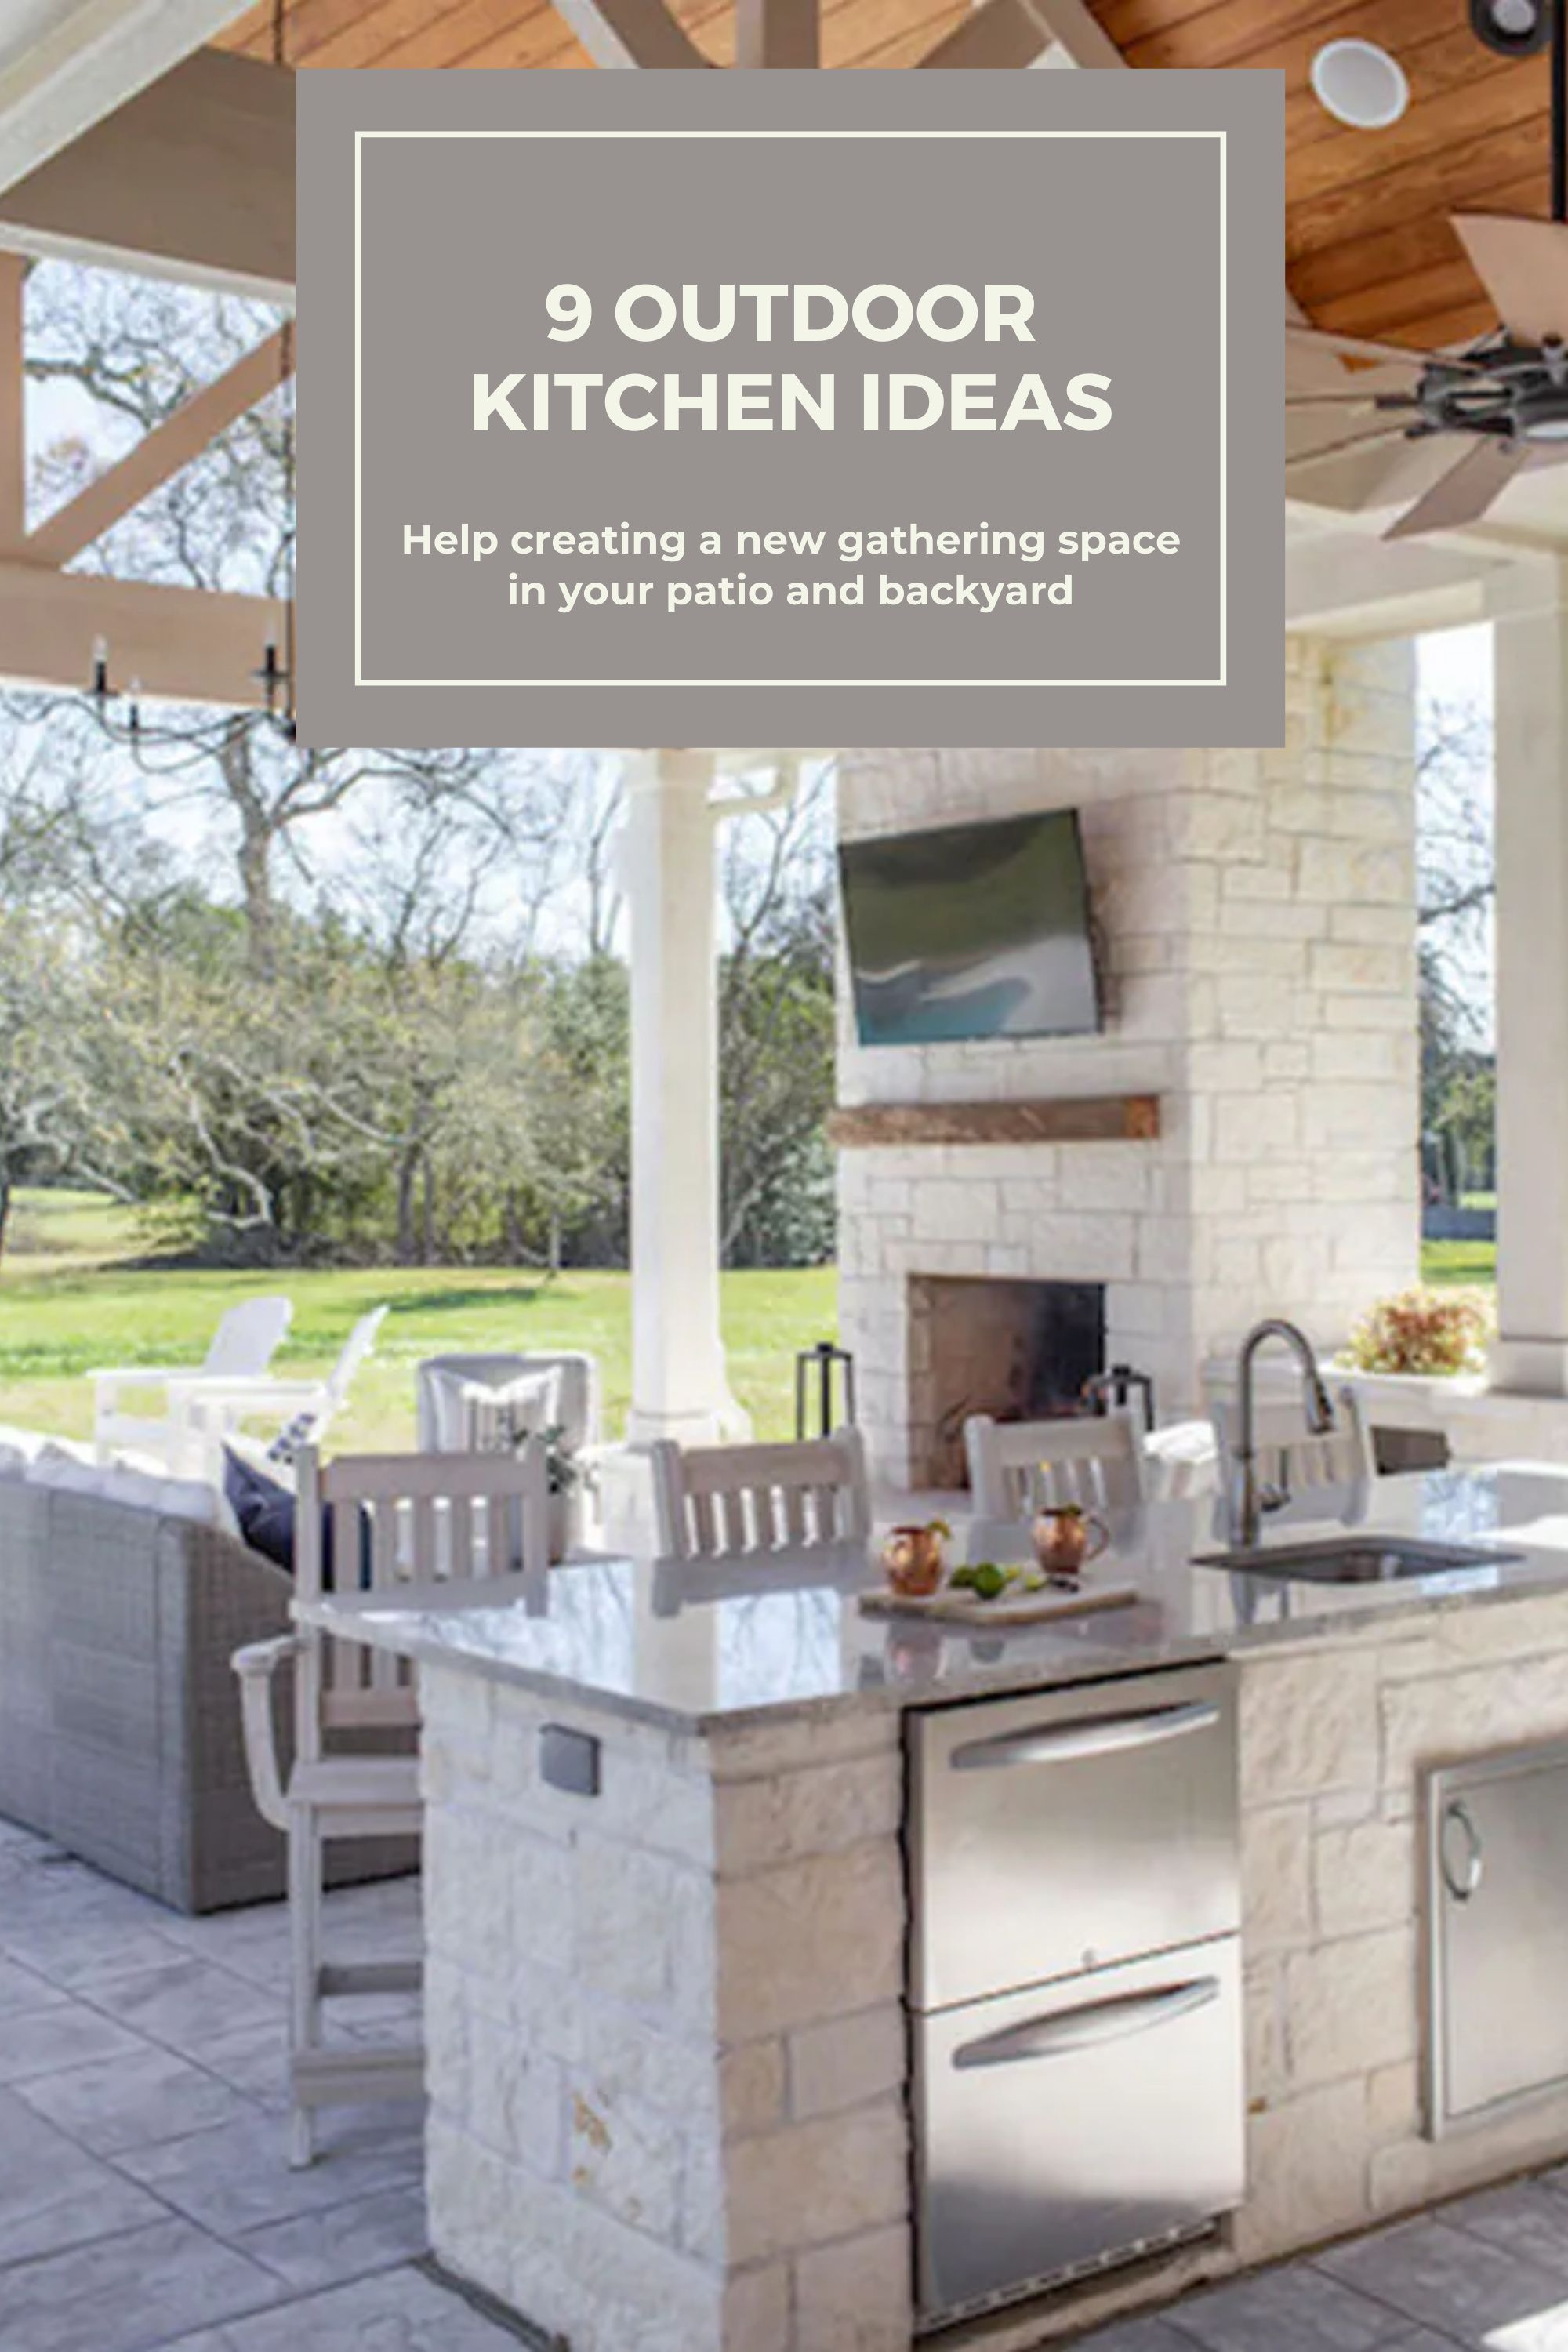 9 Outdoor Kitchen Design Ideas That Will Help You Create The Backyard Of Your Dreams Outdoor Kitchen Outdoor Kitchen Design Indoor Outdoor Kitchen